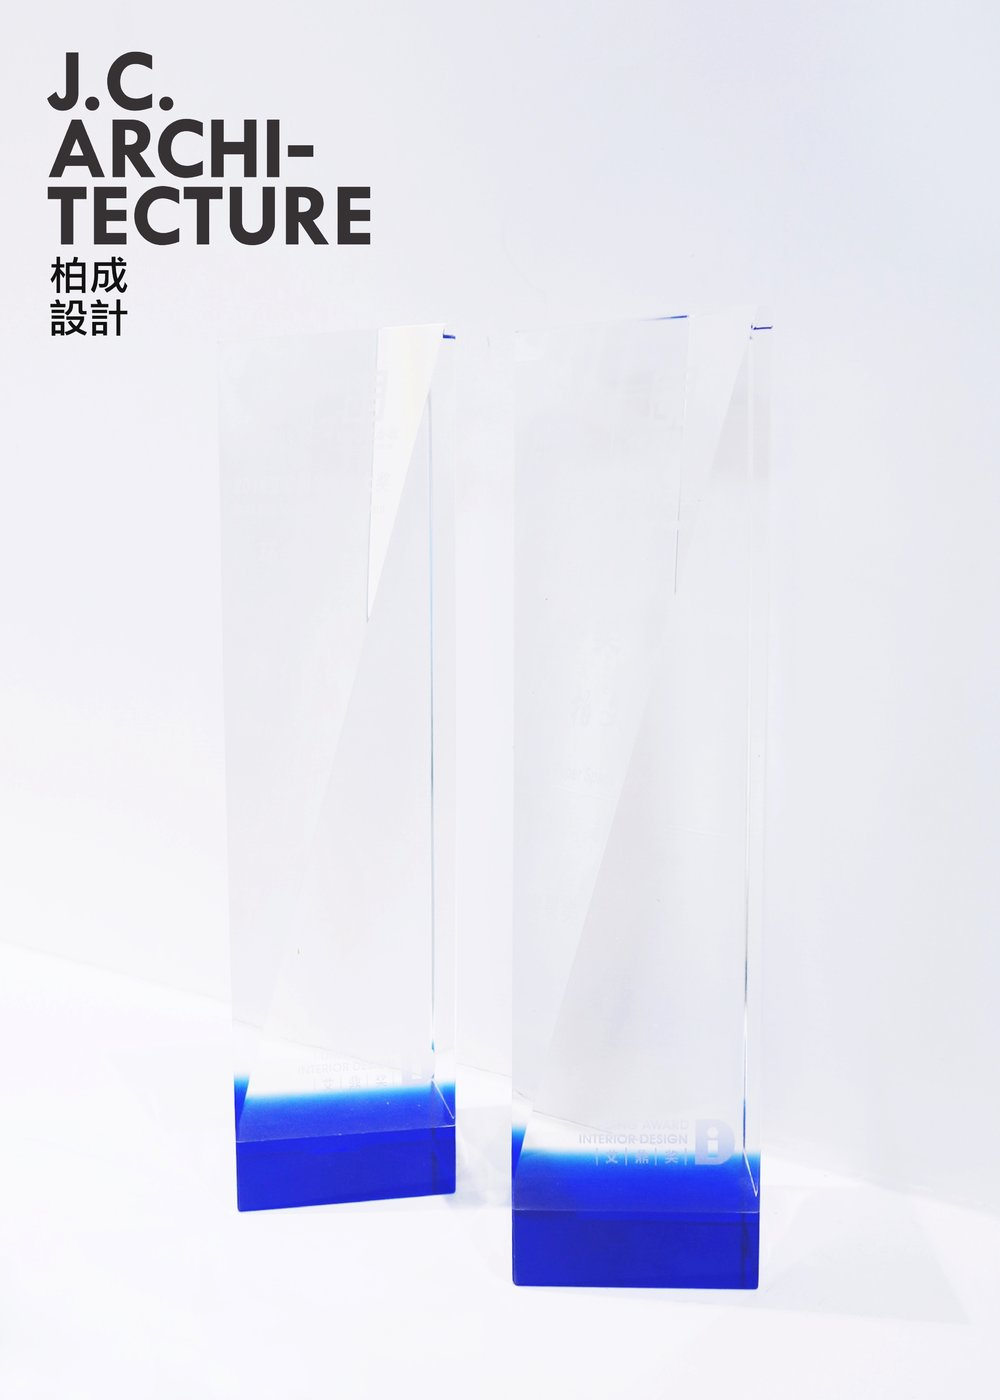 China I-ding International design award.